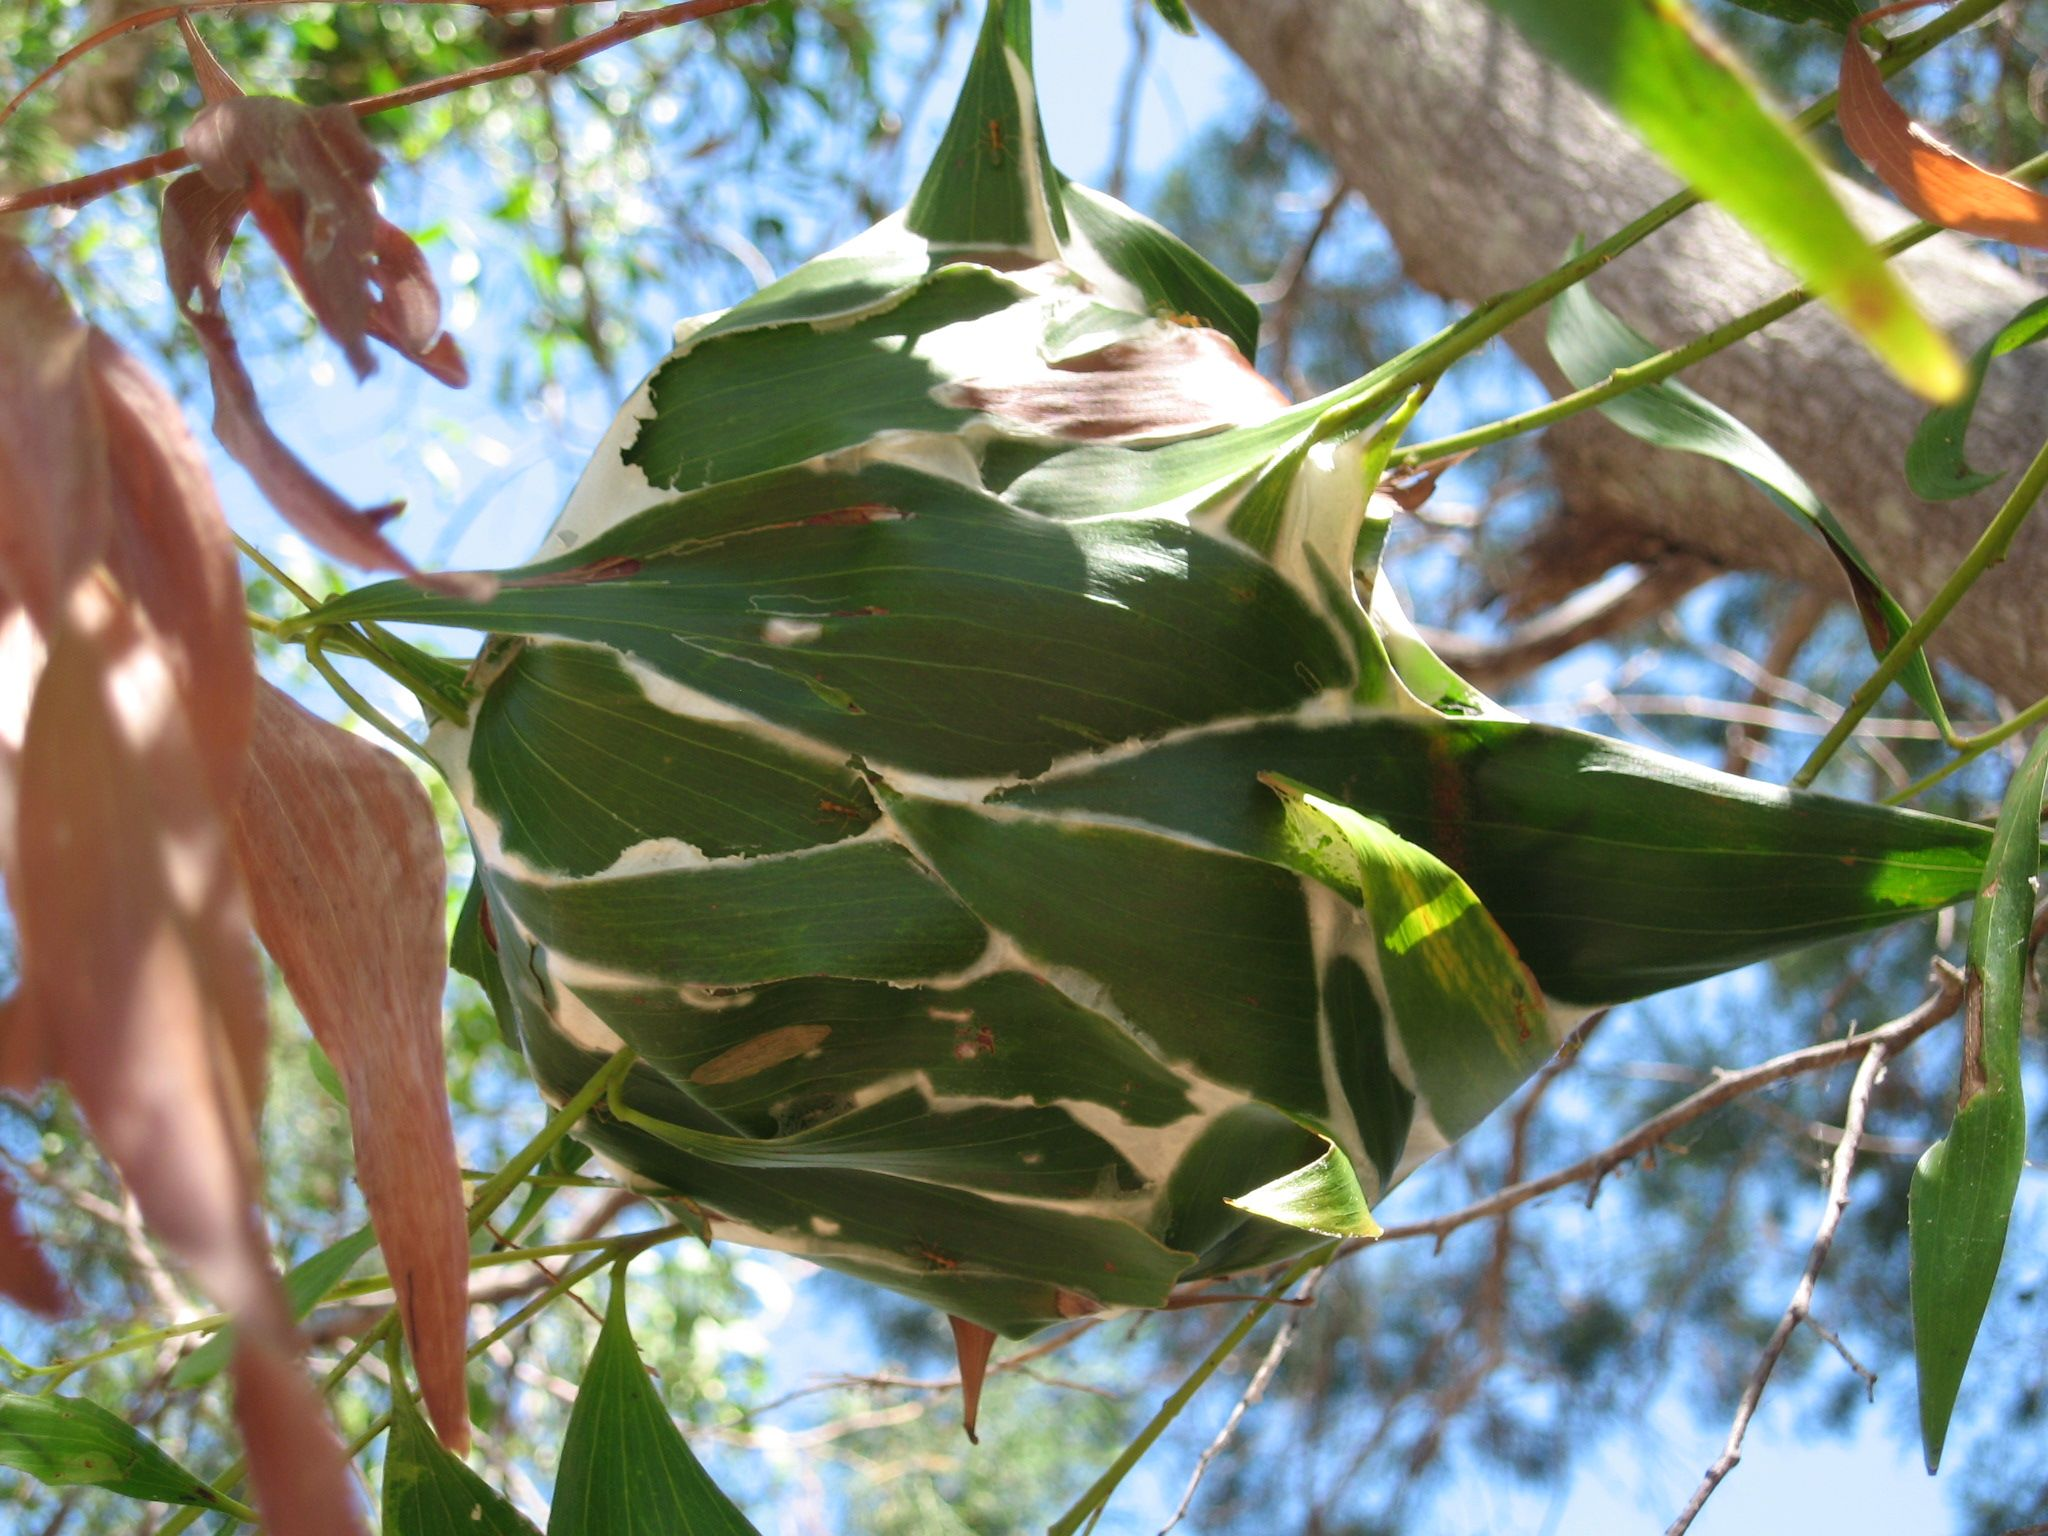 Green Ant Nest   Palm Cove   Ants, Ant insect, Animal habitats